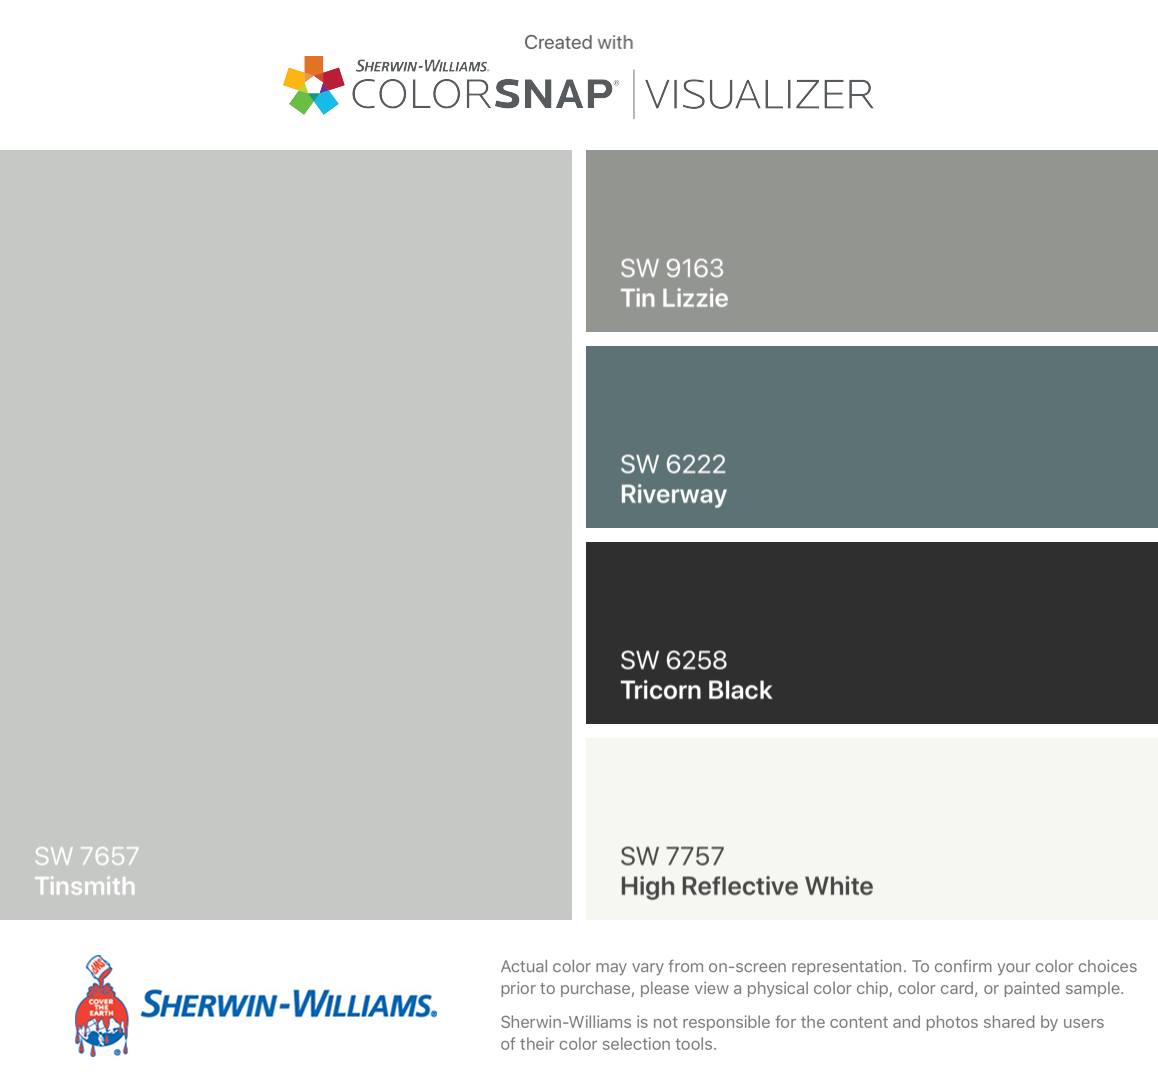 I Found These Colors With Colorsnap Visualizer For Iphone By Sherwin Williams Tinsmith Sw 7657 Tin Li Sherwin Williams Colors Tin Lizzie Best Paint Colors